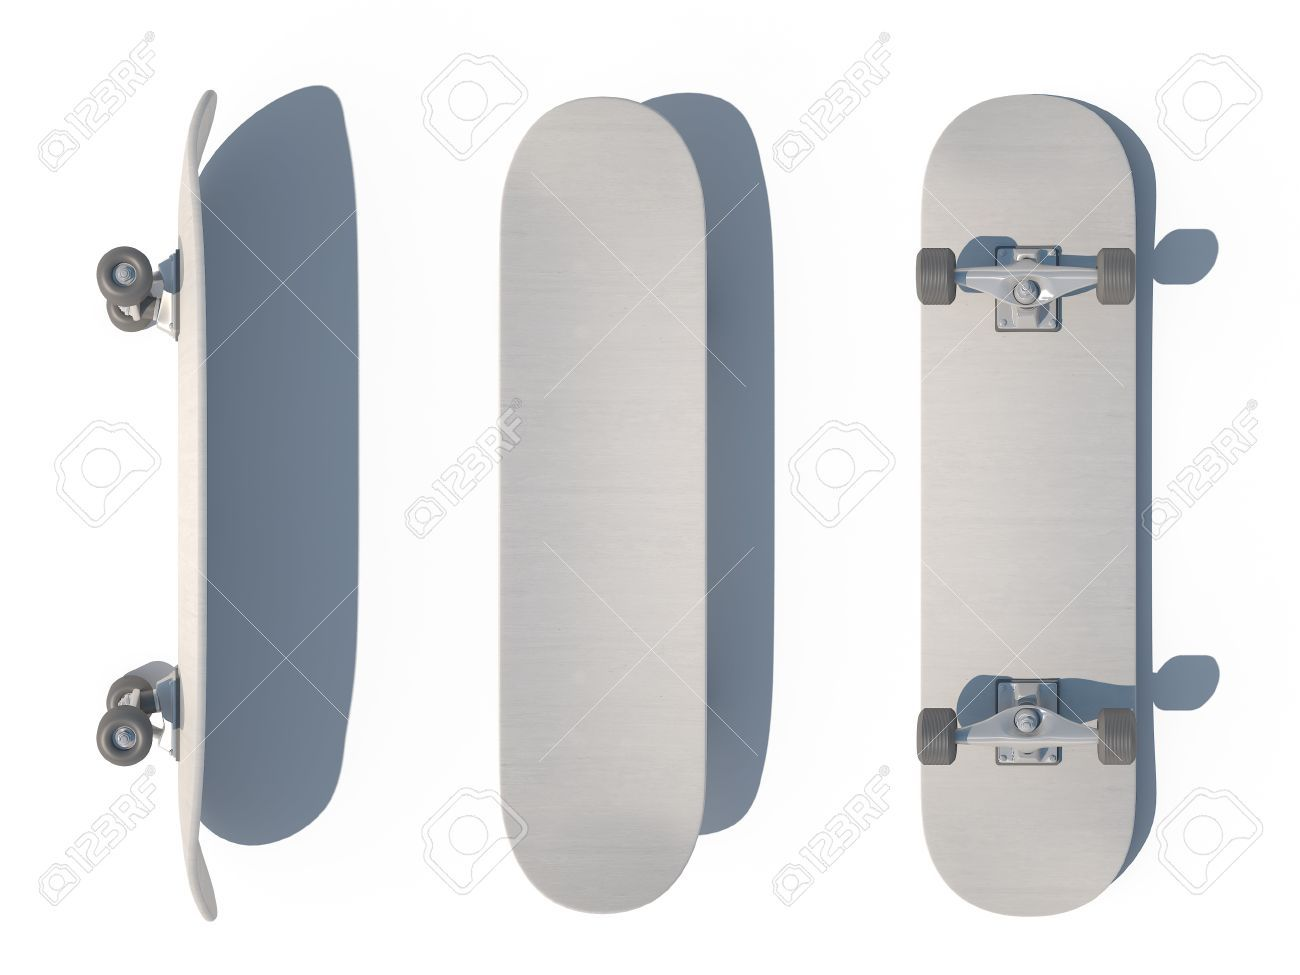 Image result for skateboard view